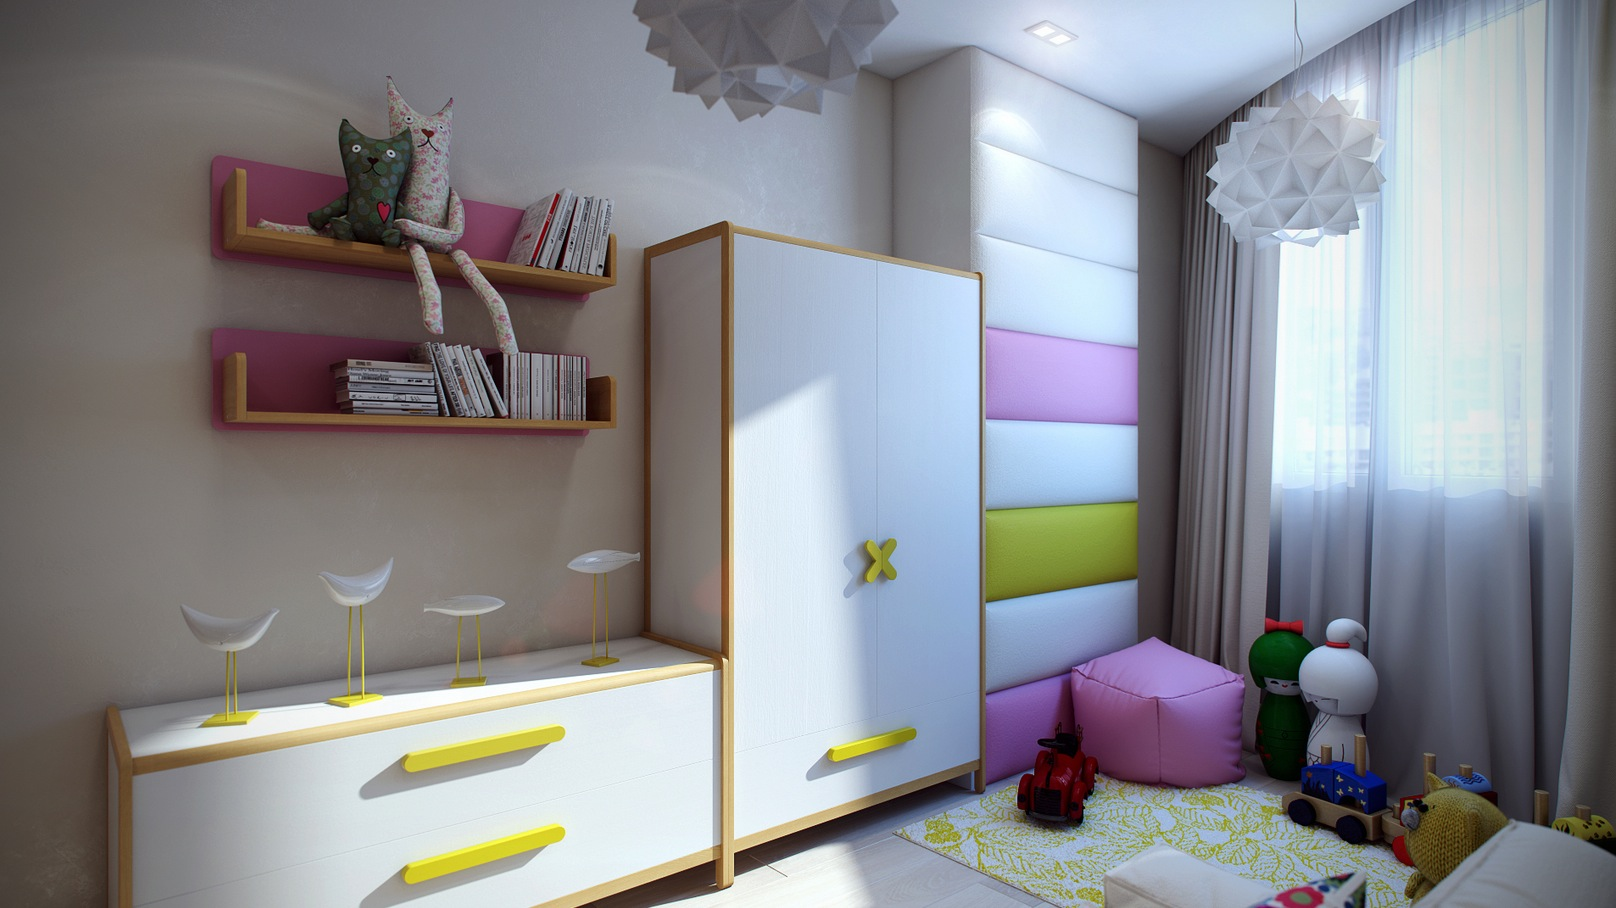 7 Inspiring Kid Room Color Options For Your Little Ones: Casting Color Over Kids Rooms